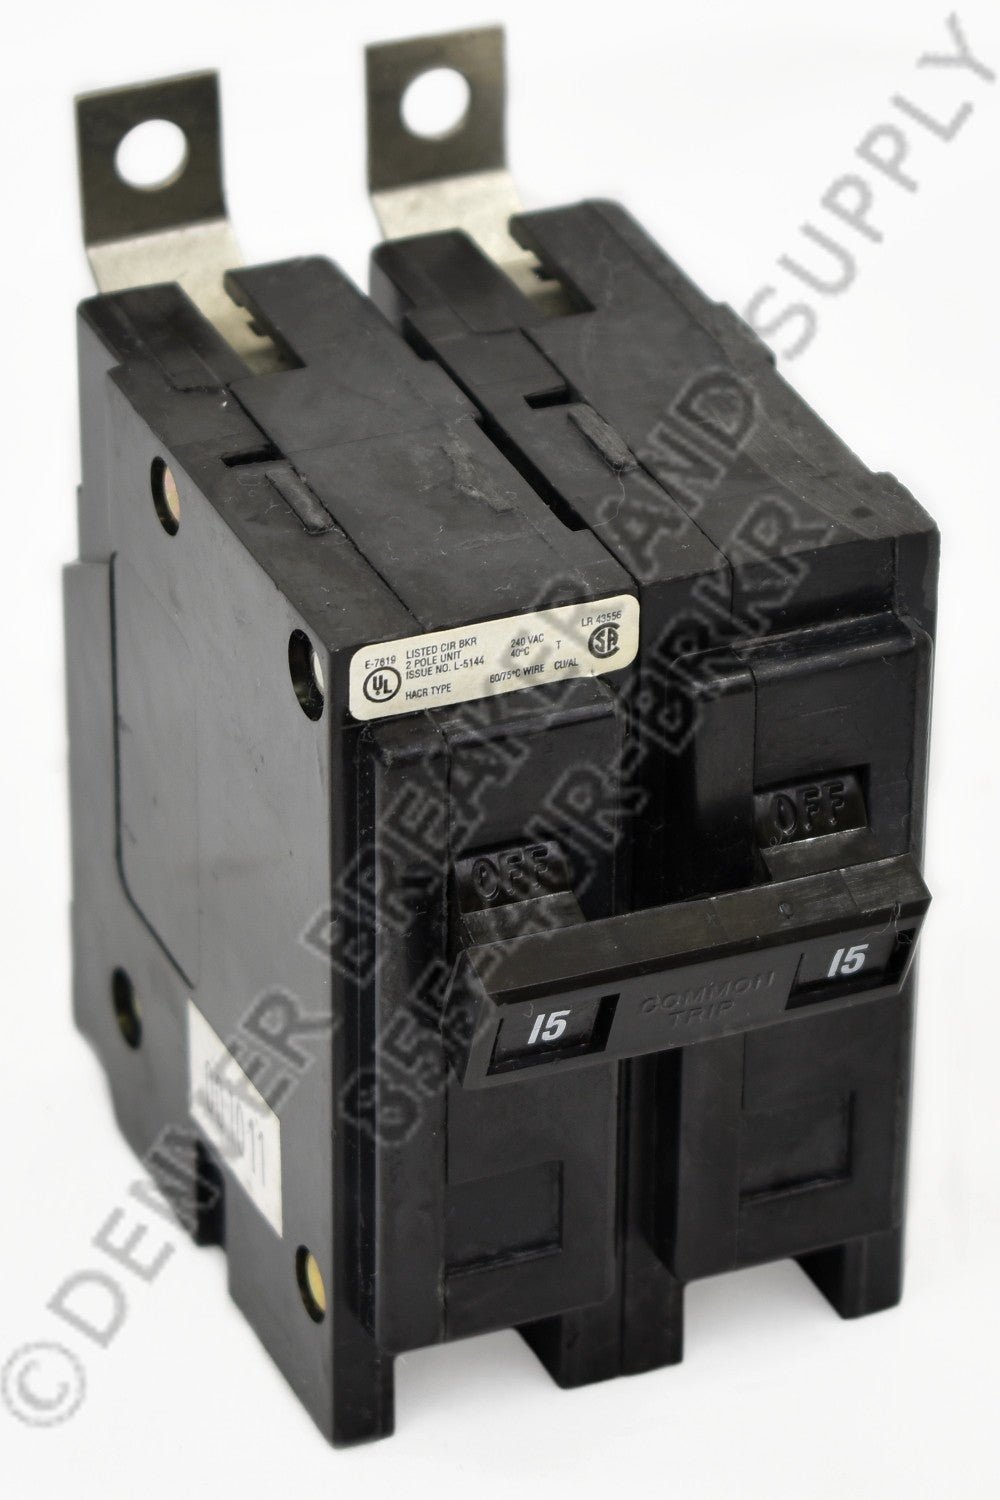 Cutler Hammer BAB2045 Circuit Breakers